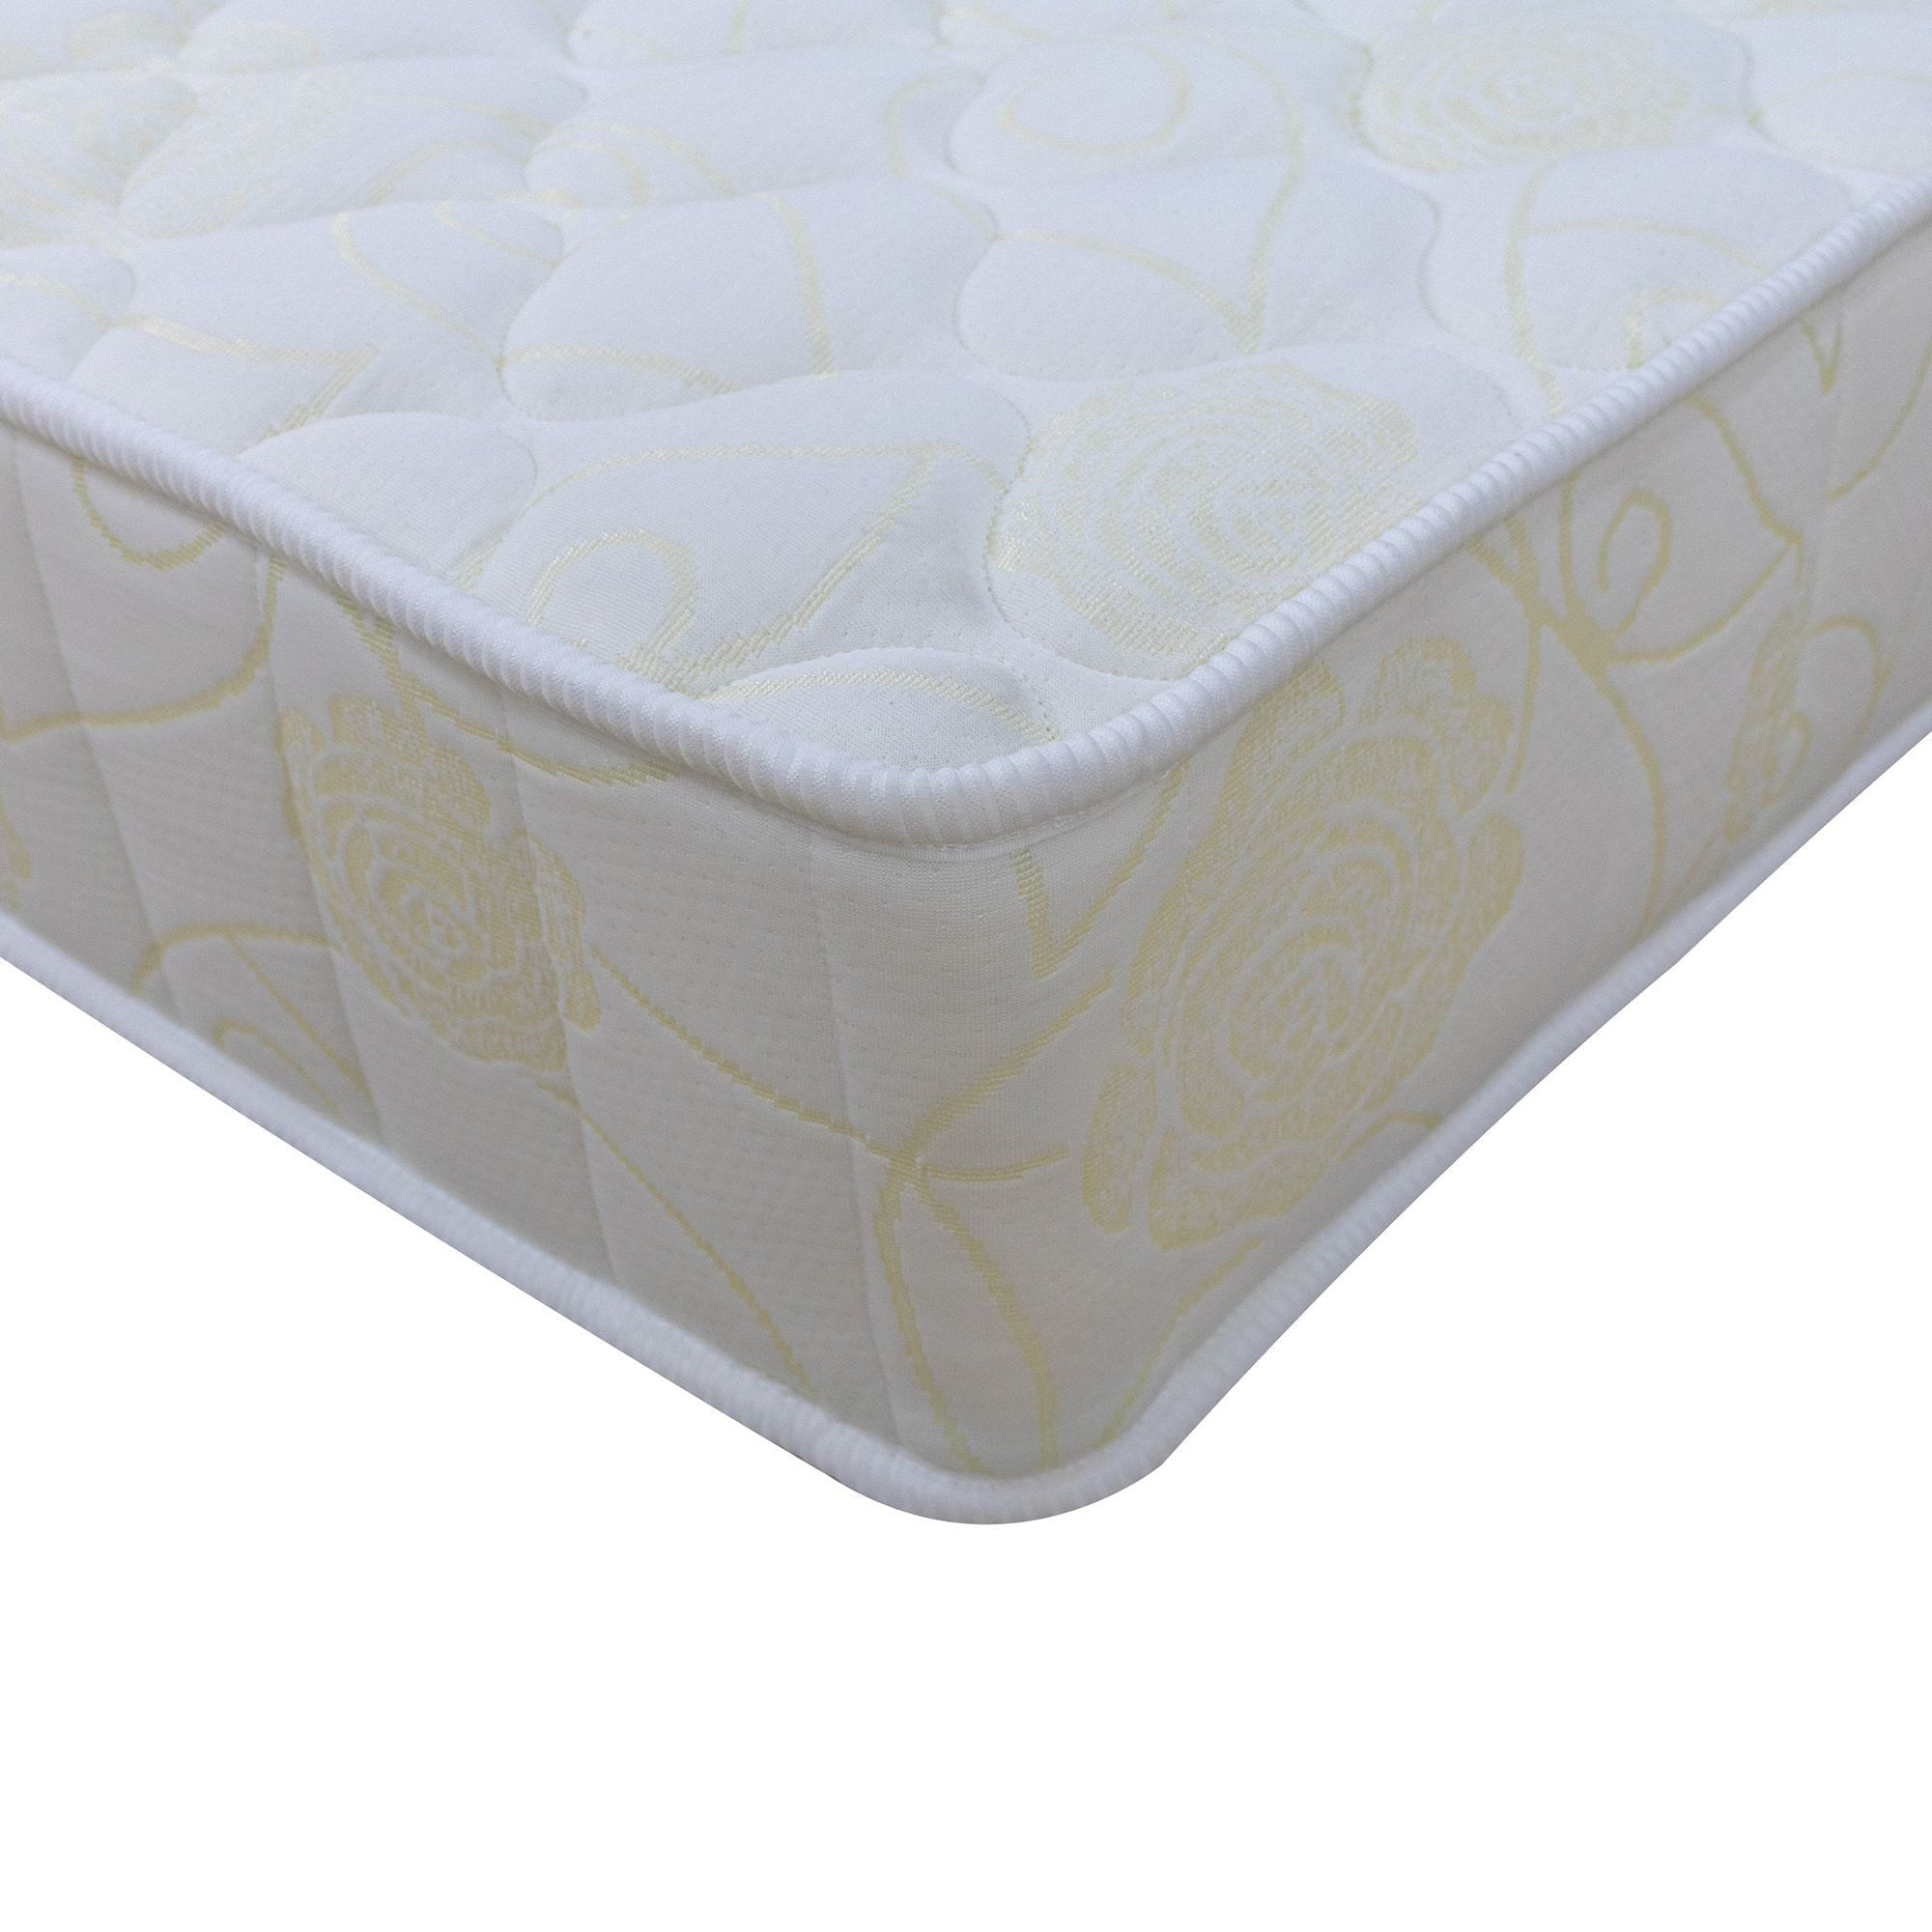 Ruby Latex Deluxe Mattress